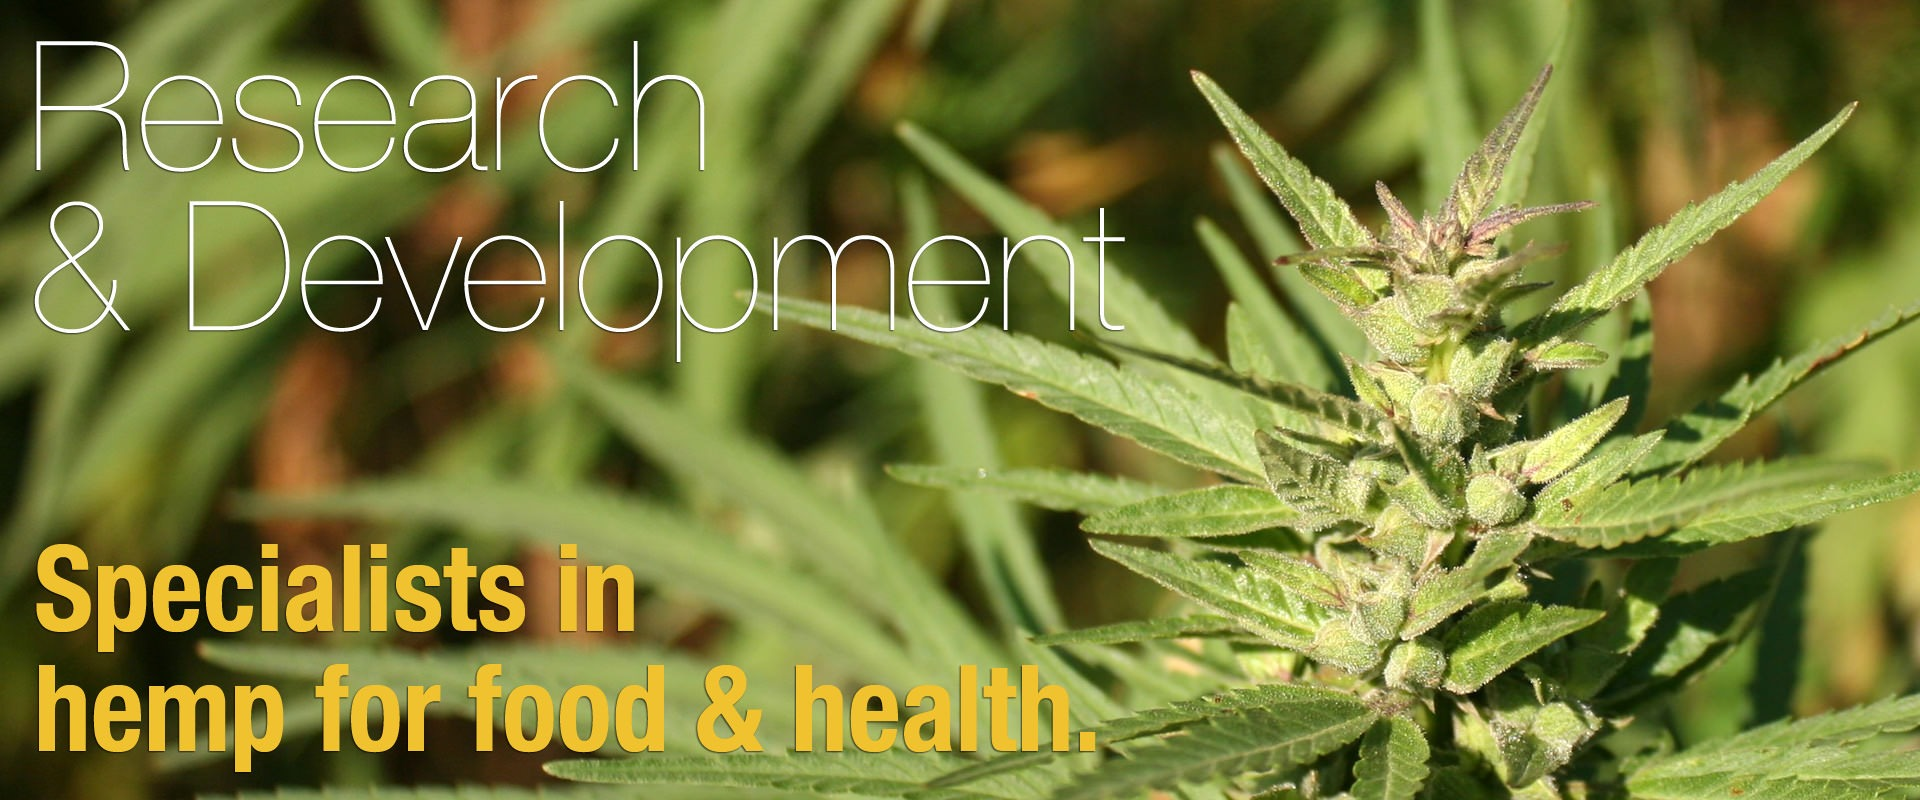 Hemp research and development